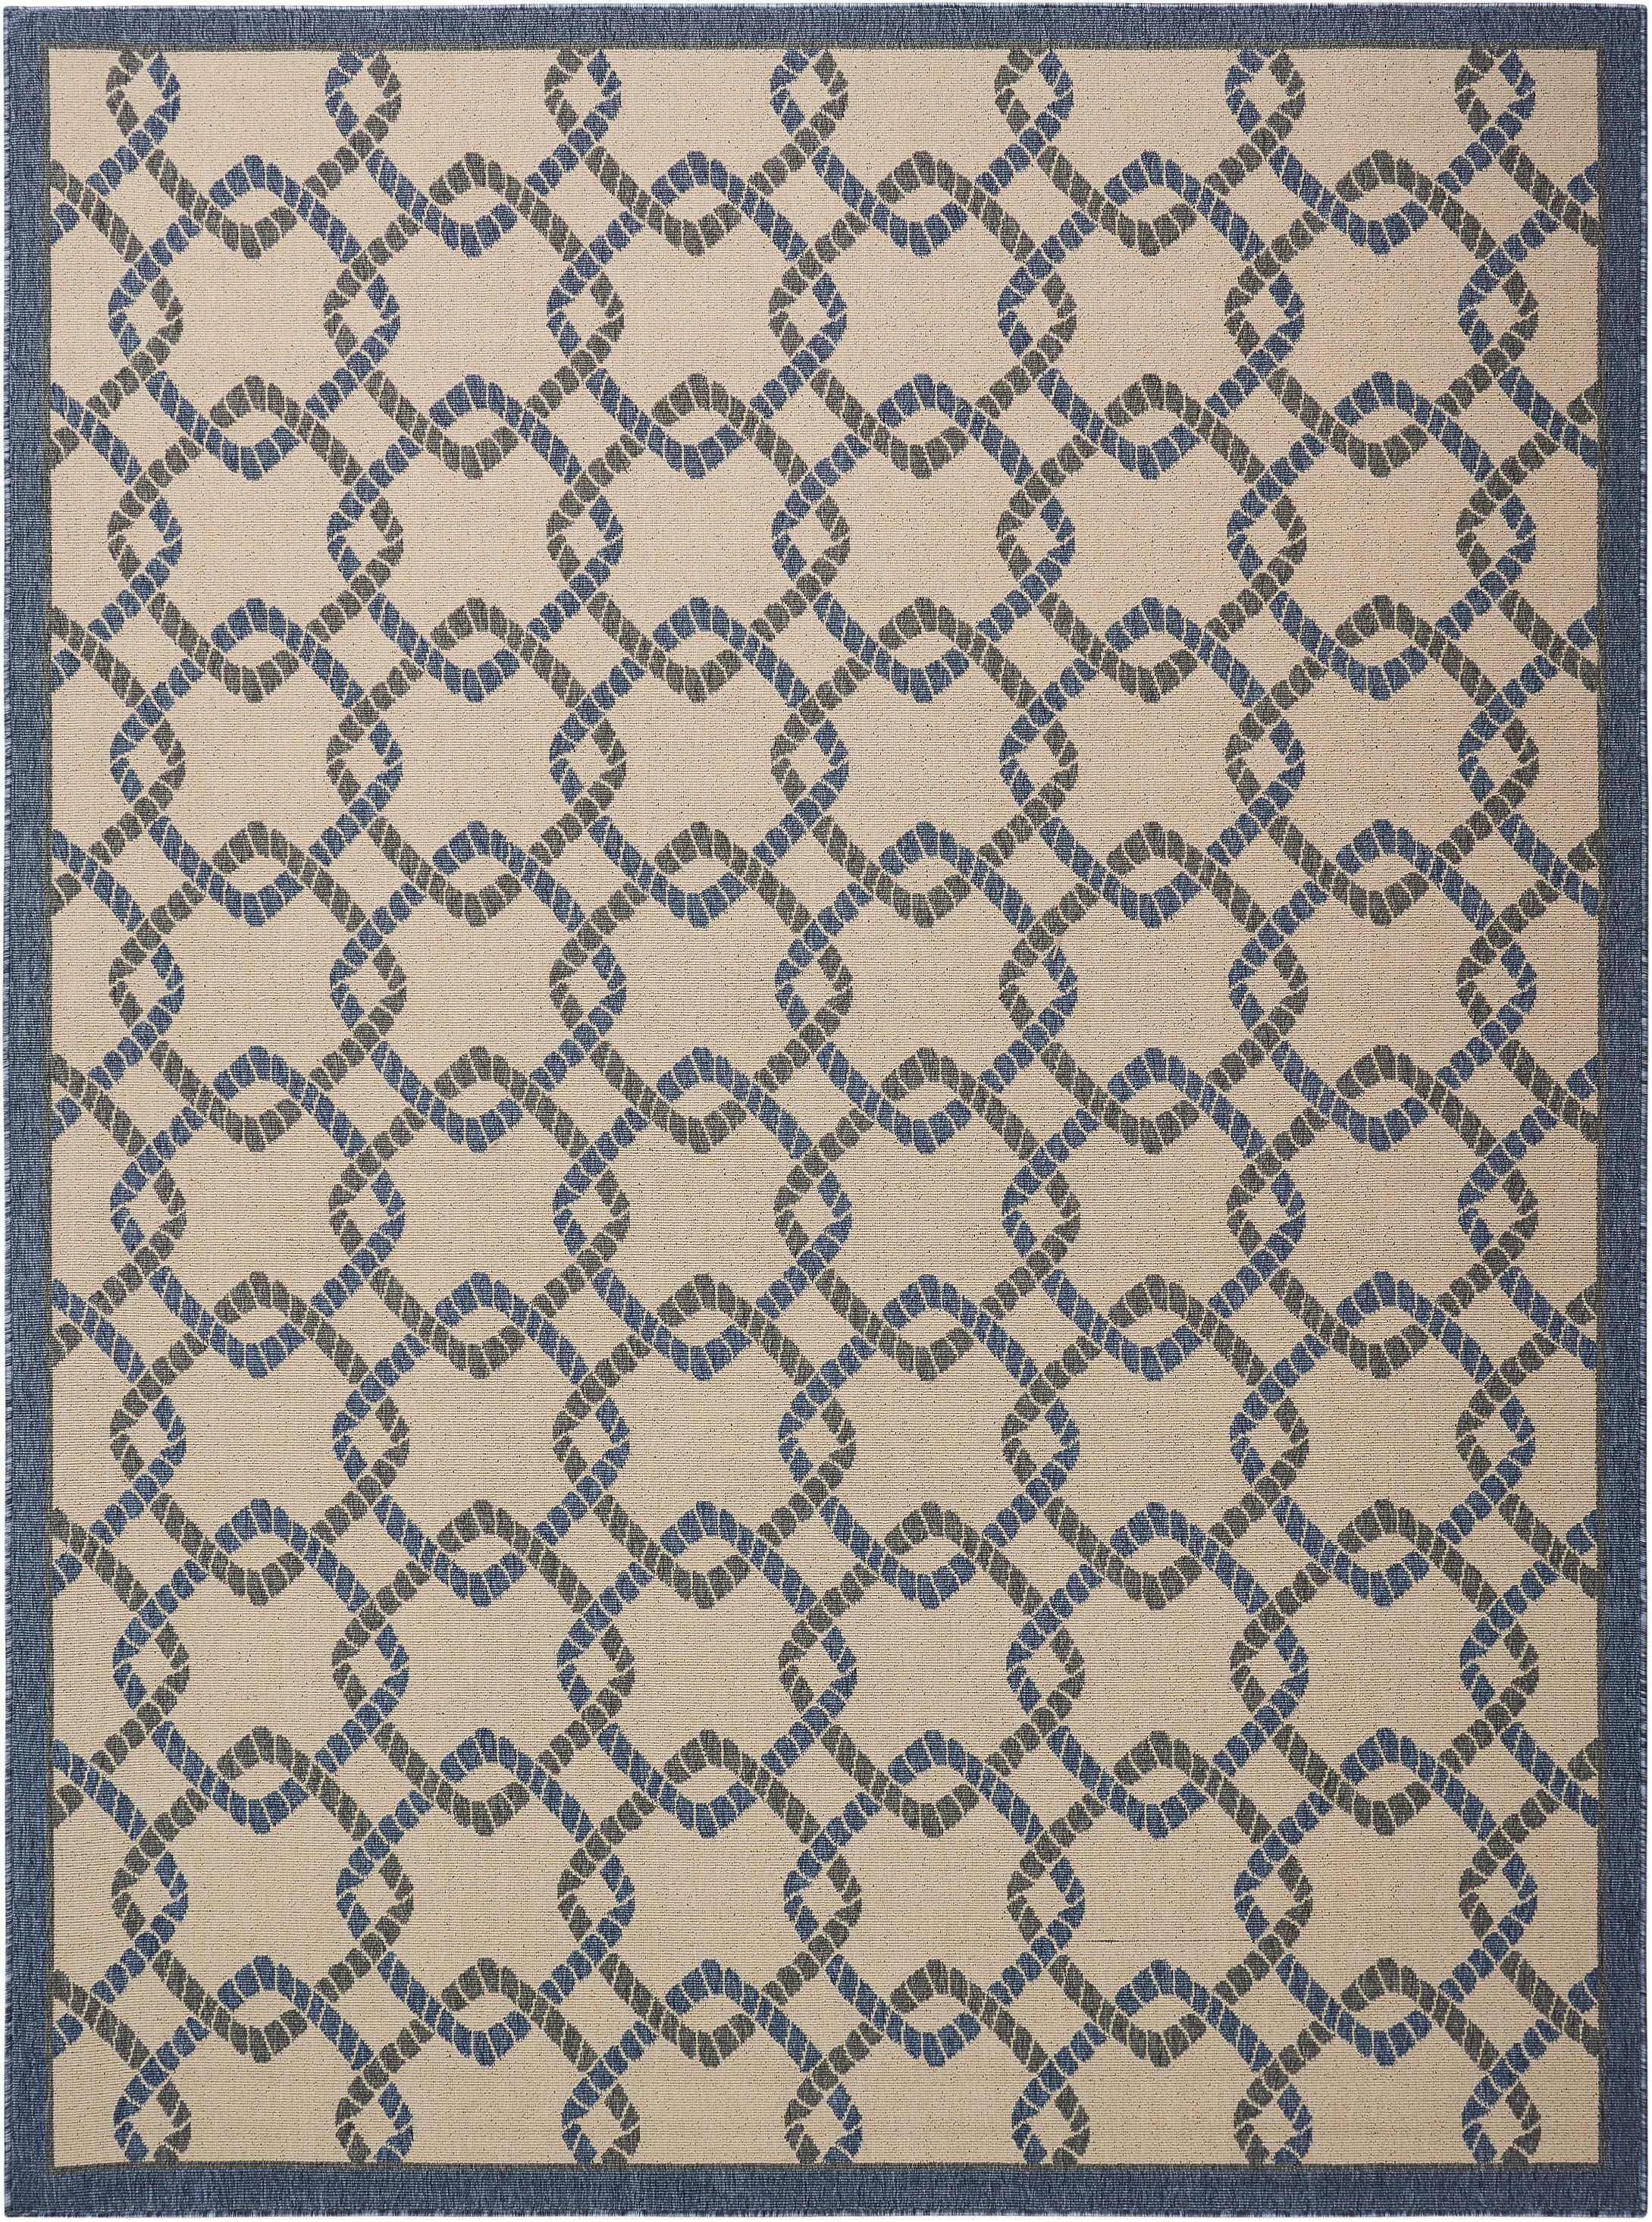 Kittrell Ivory/Blue/Gray Indoor/Outdoor Area Rug Rug Size: Rectangle 7'10